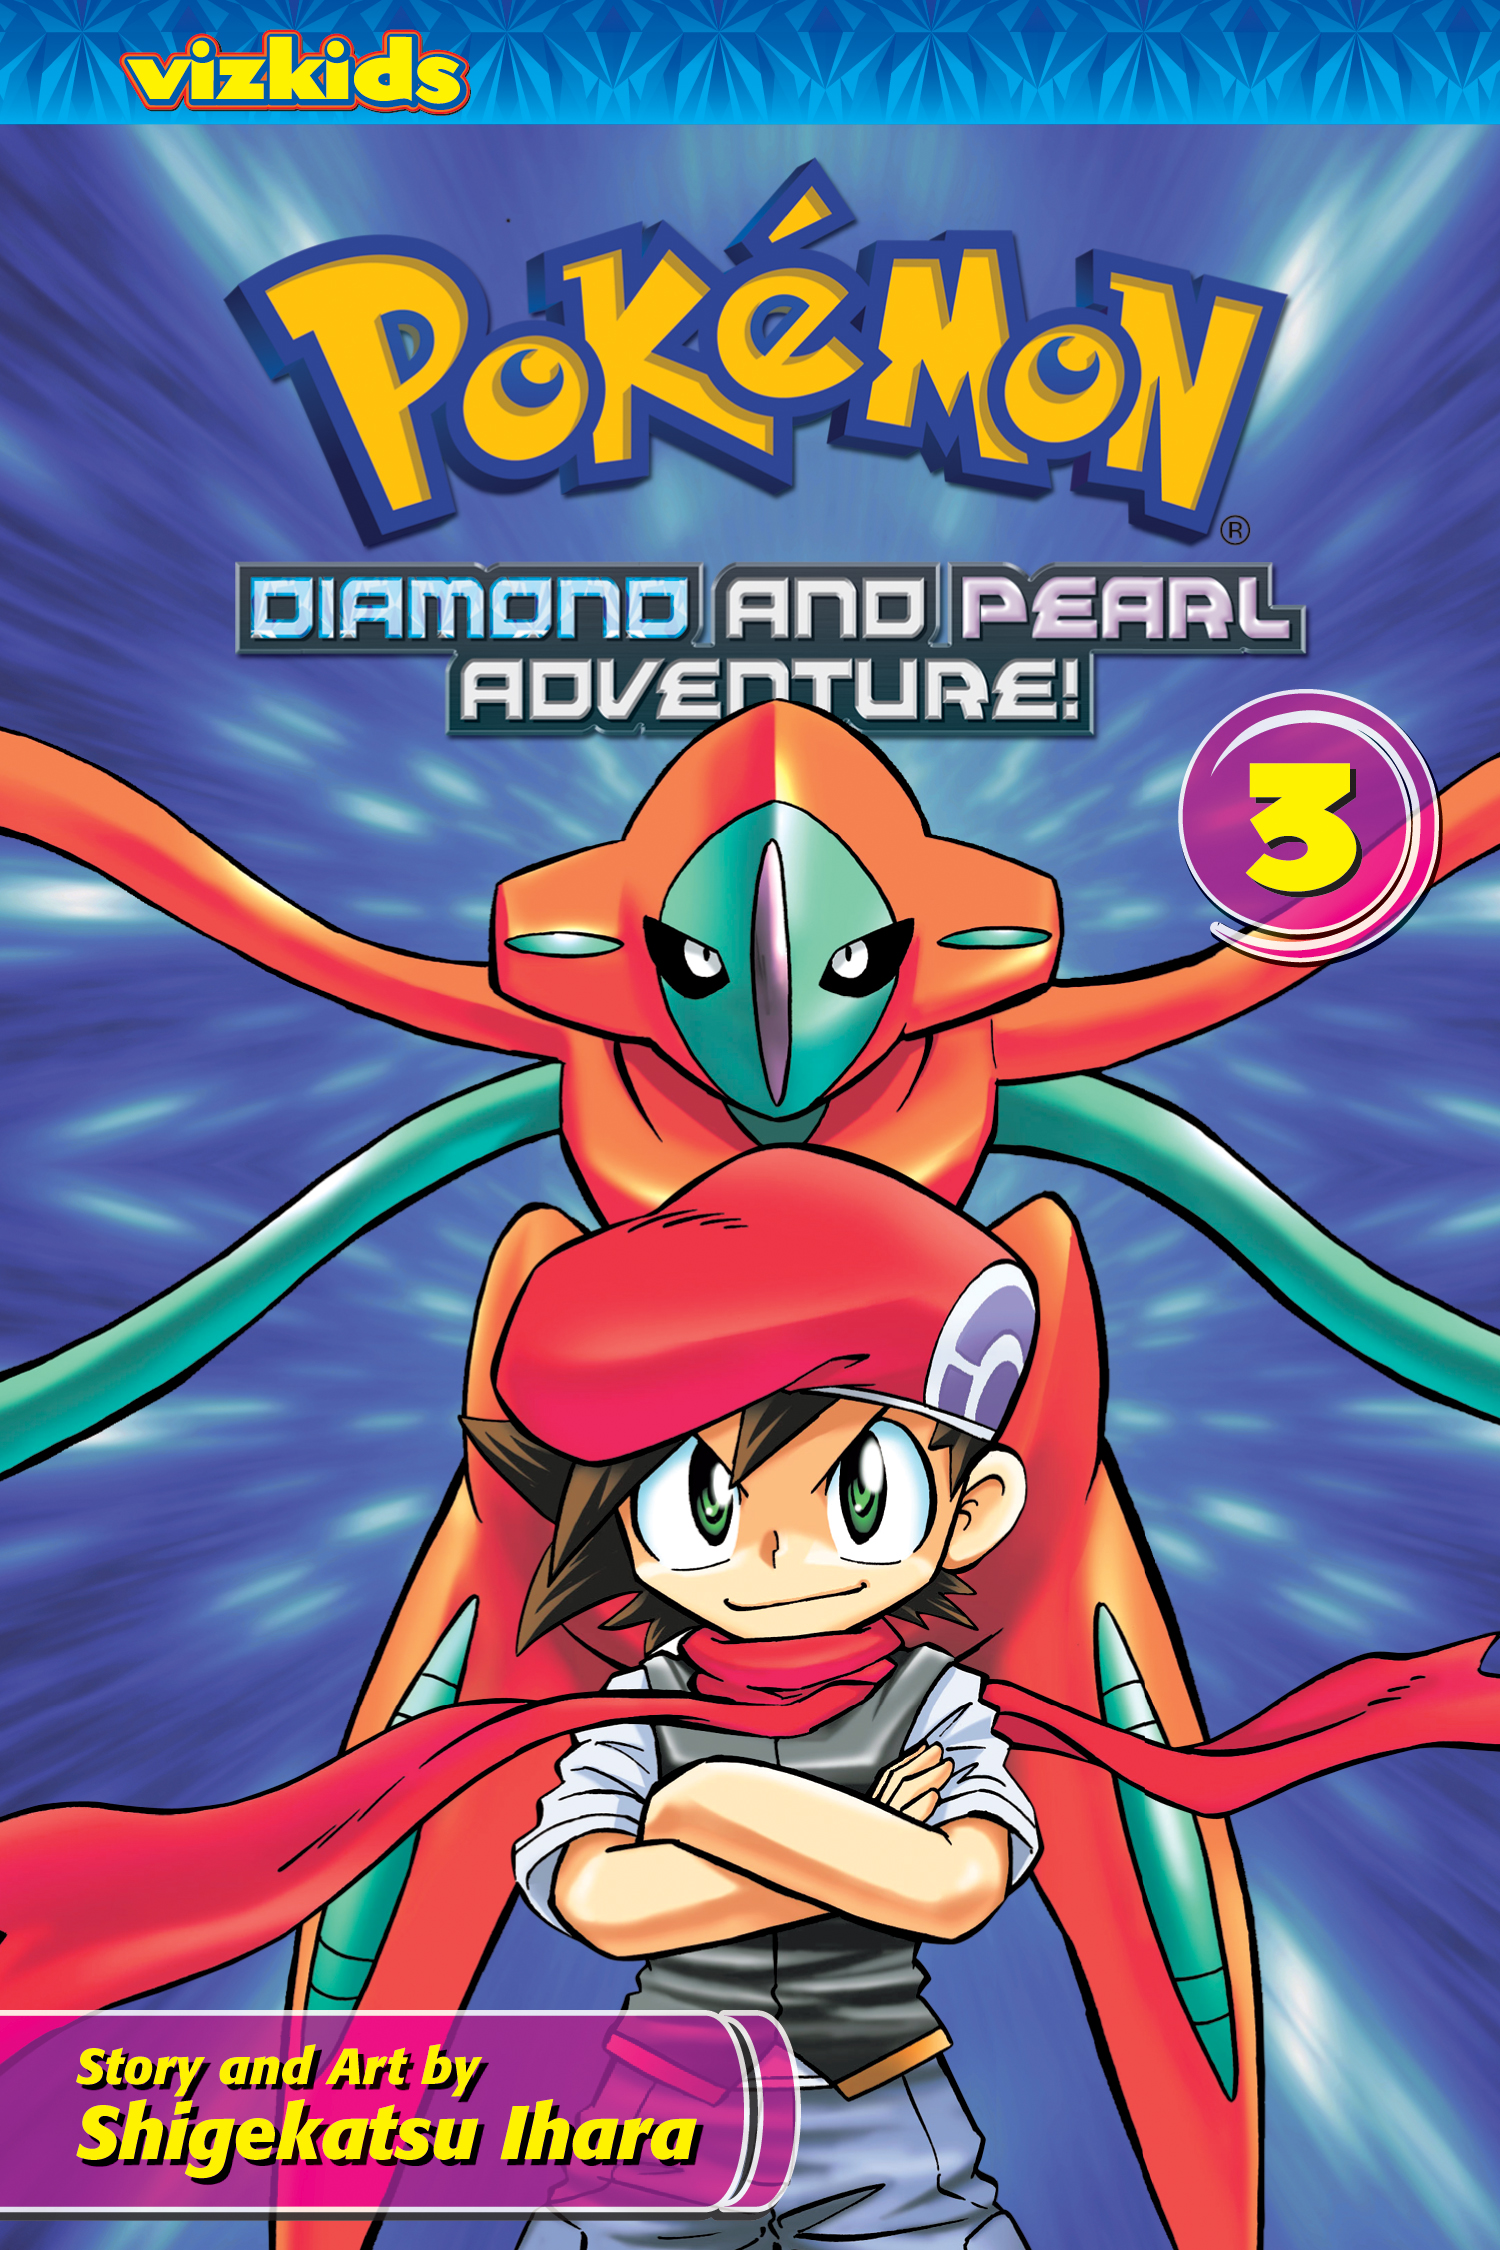 pokémon diamond and pearl adventure!: volume 3 | pokémon wiki